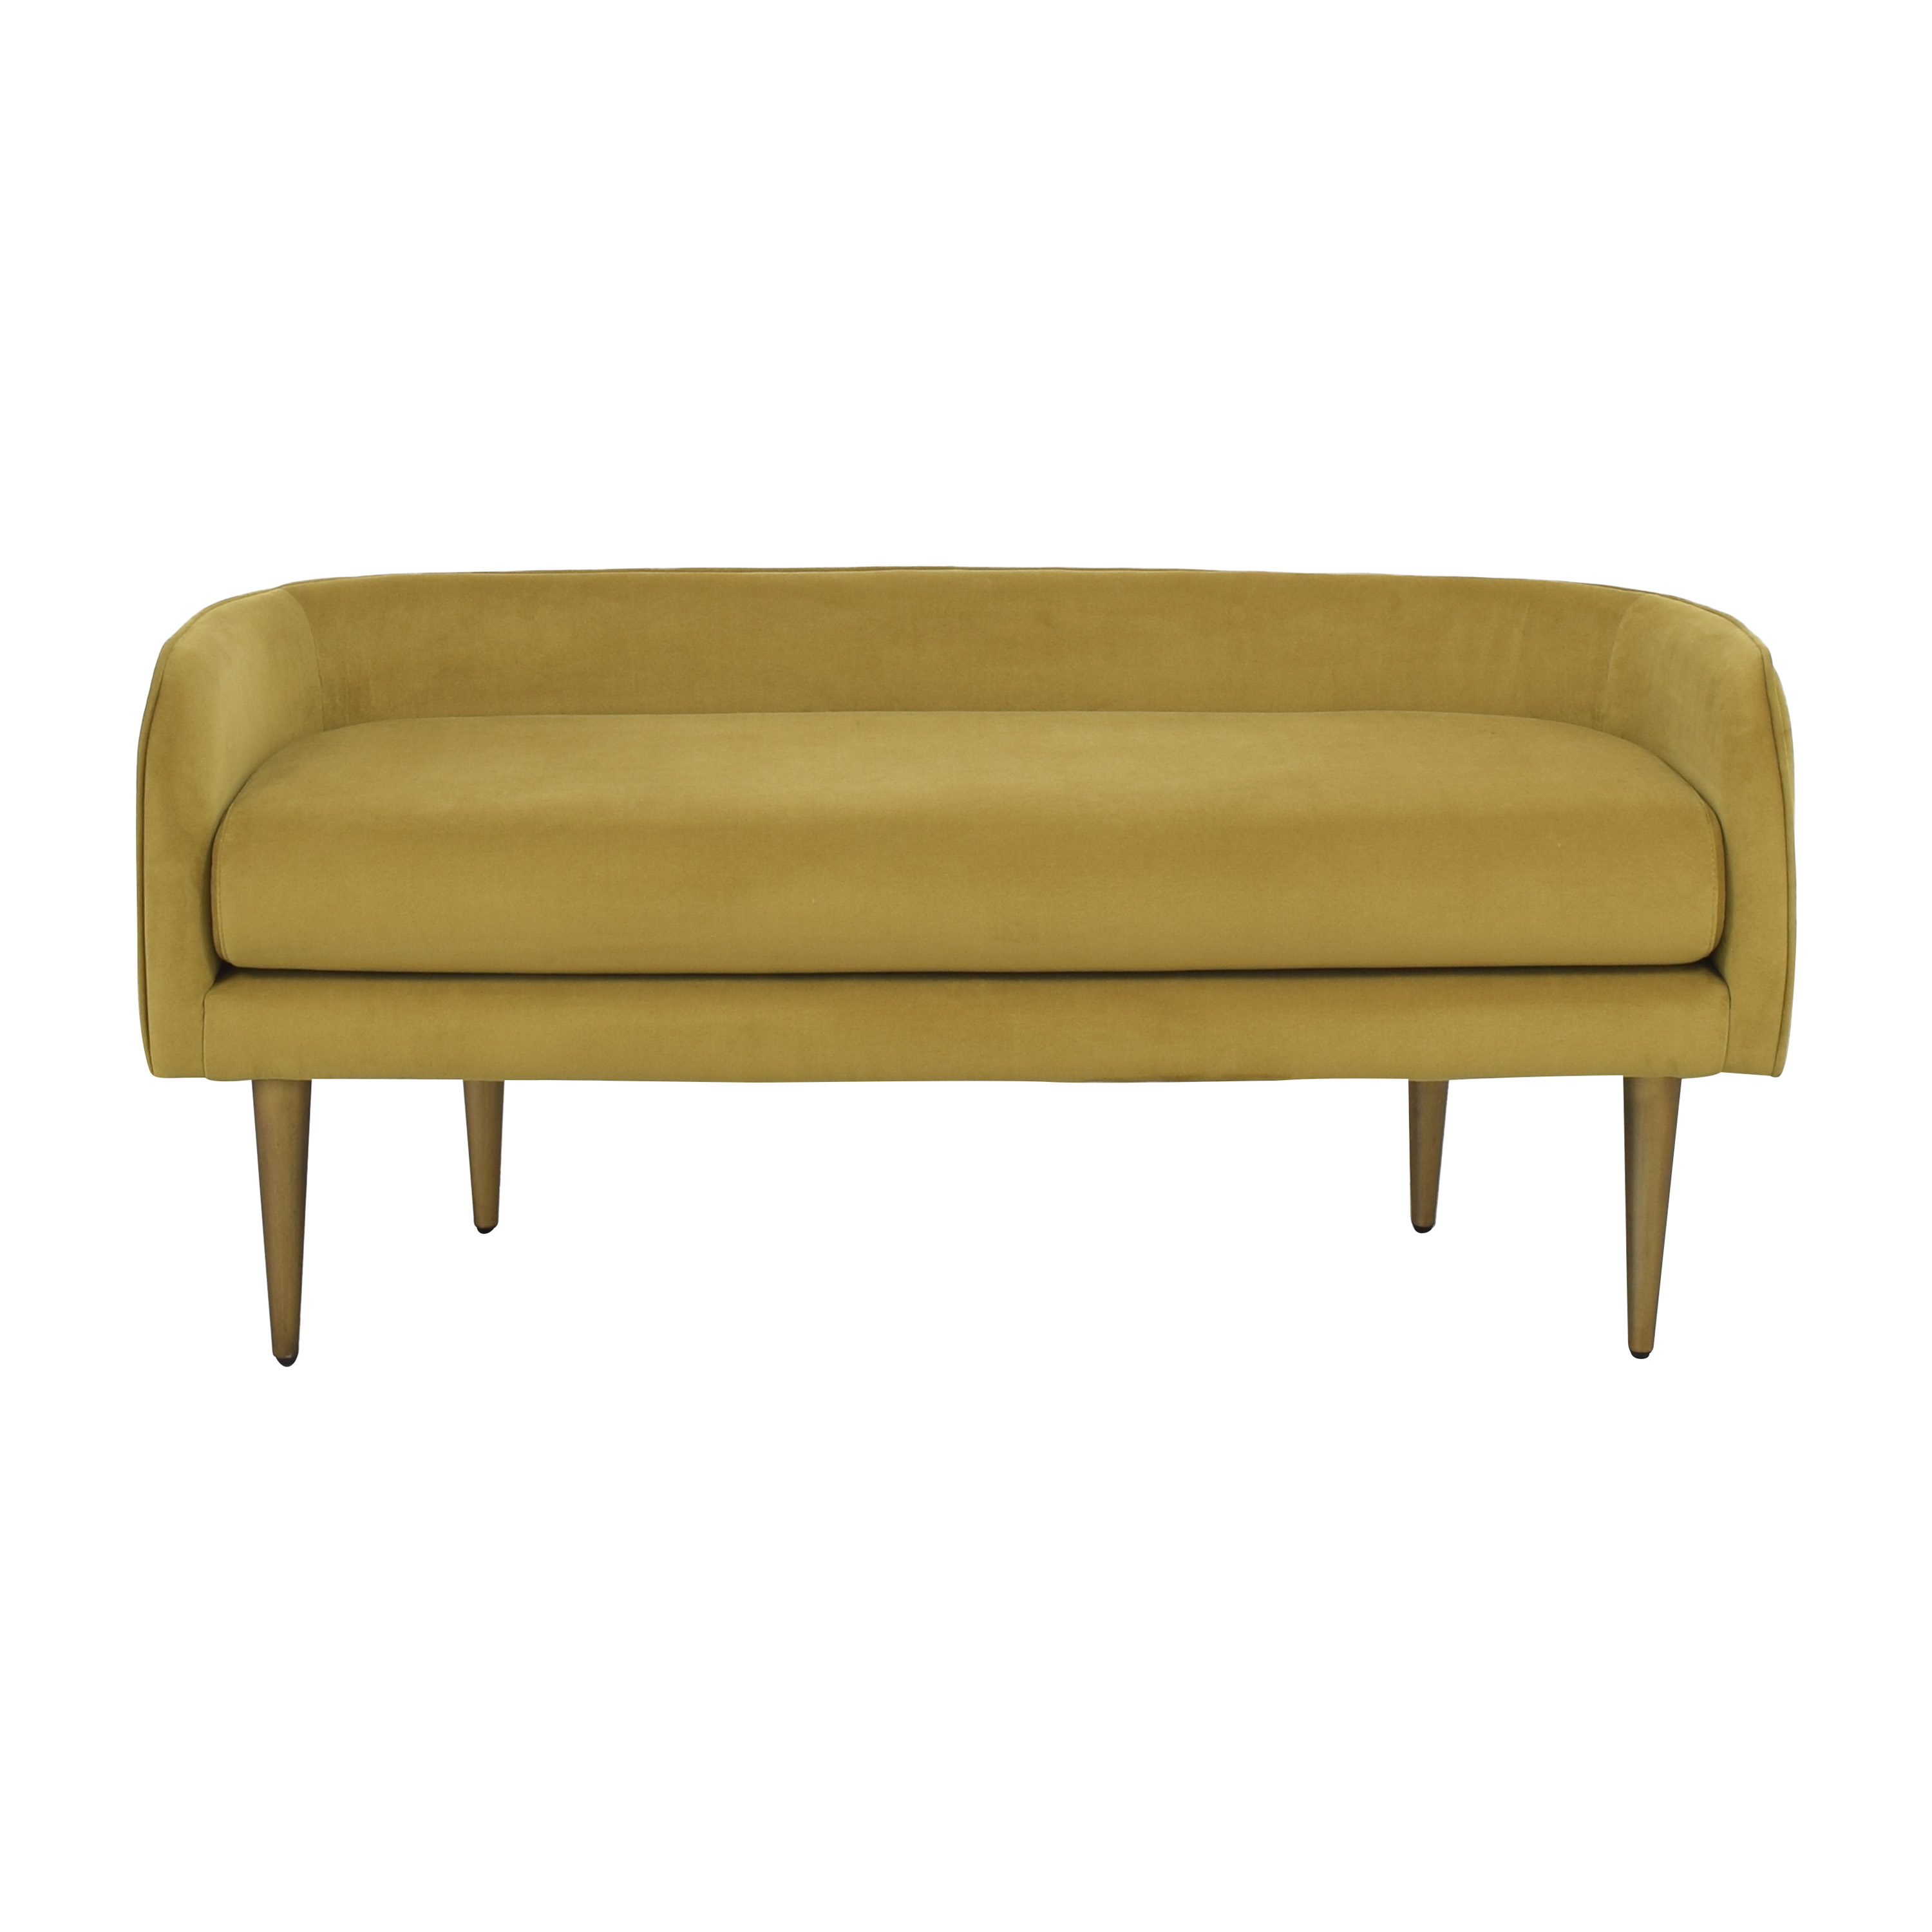 shop West Elm Celine Bench West Elm Benches